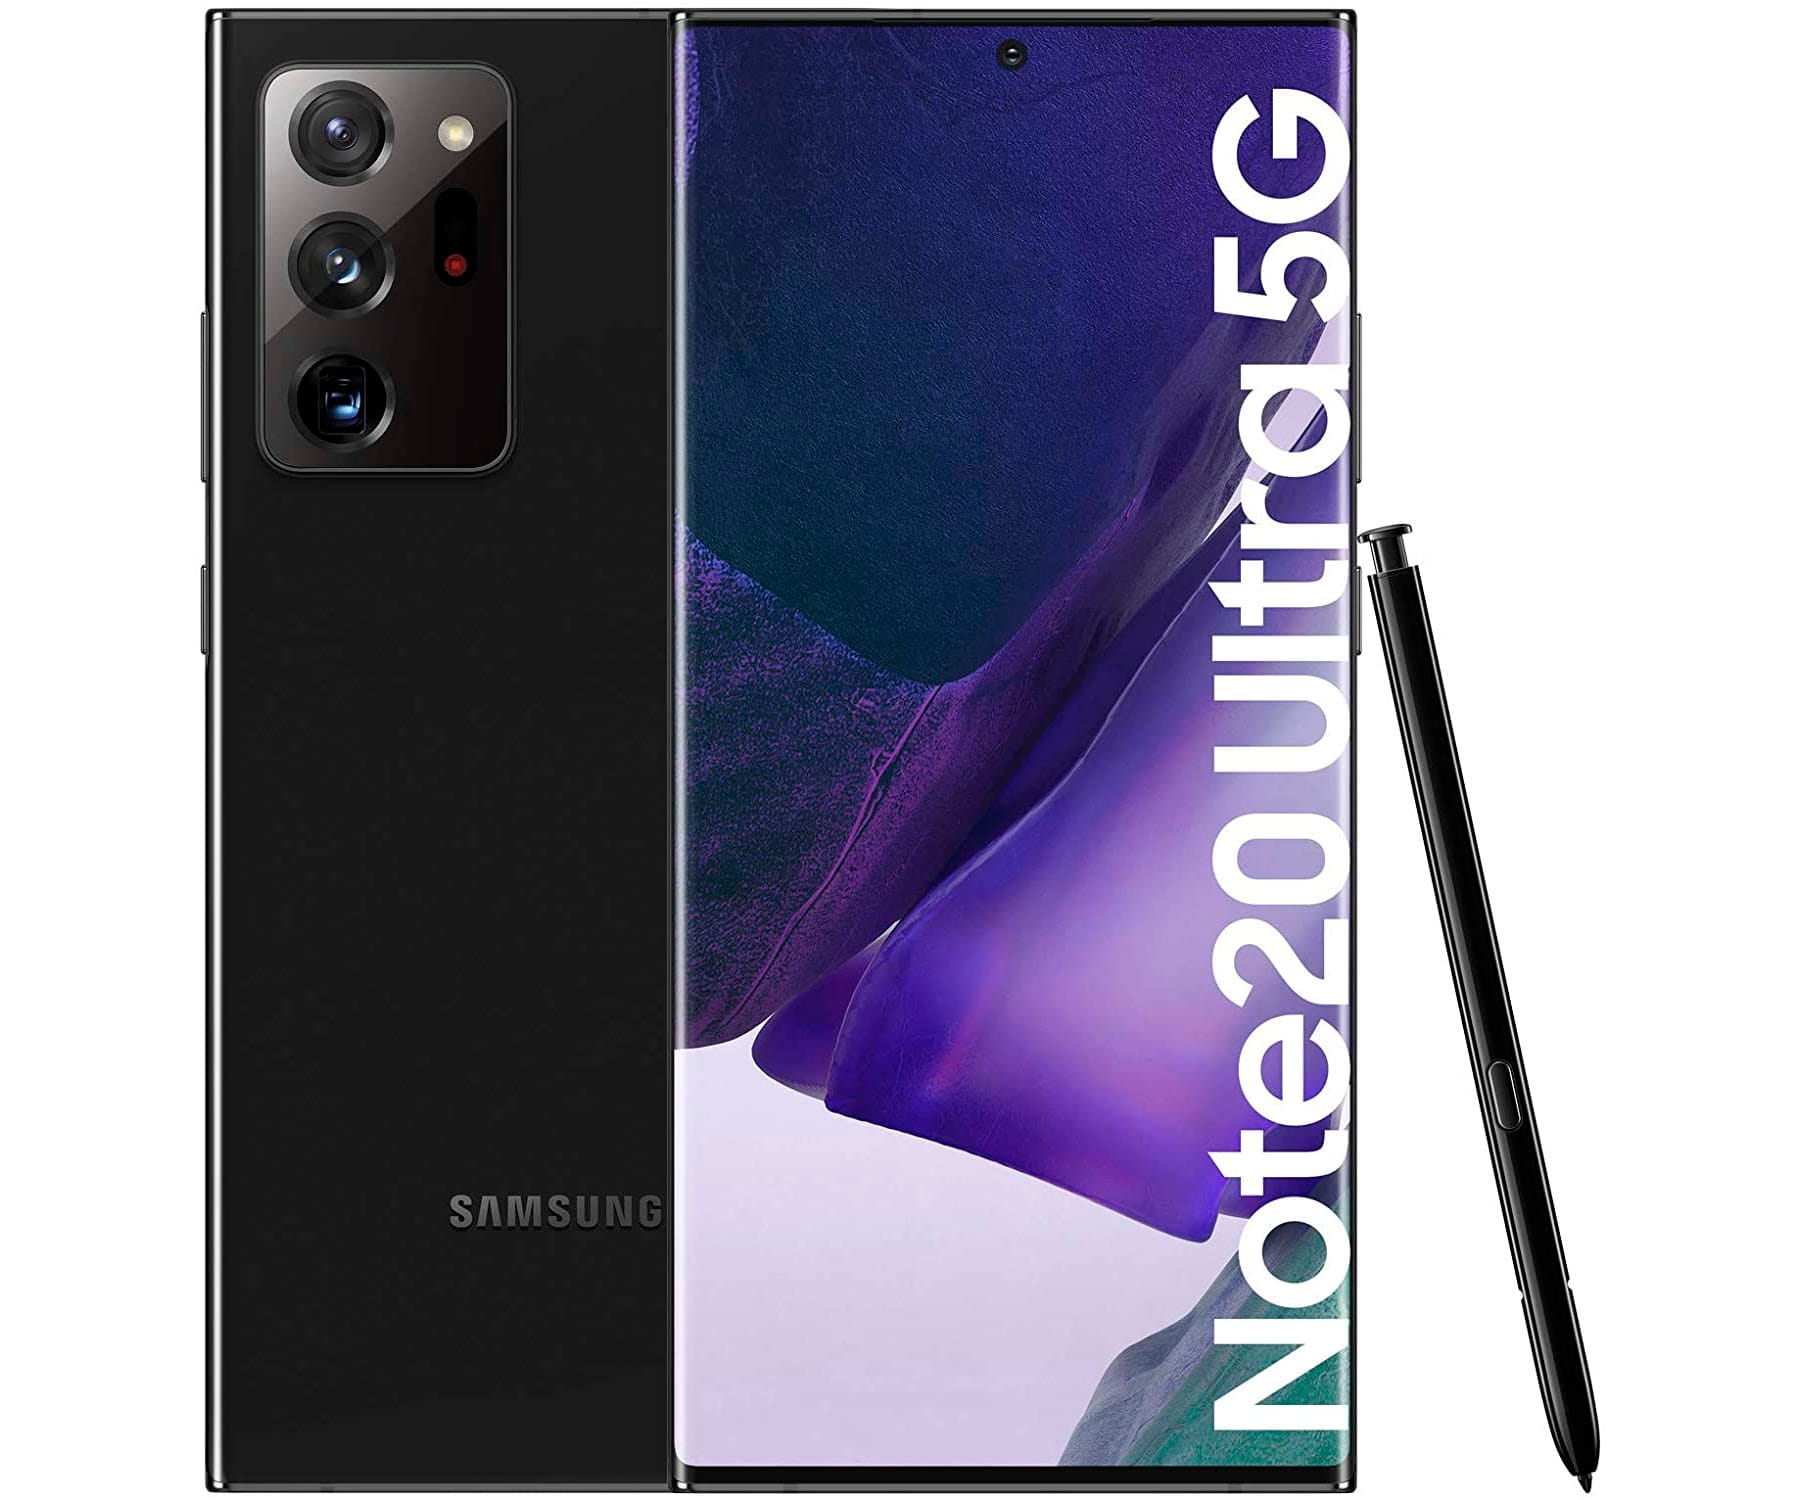 SAMSUNG GALAXY NOTE 20 ULTRA NEGRO MÓVIL DUAL SIM 5G 6.9'' SUPER AMOLED 120Hz 2K OCTACORE 256GB 12GB RAM TRICAM 108MP SELFIES 10MP